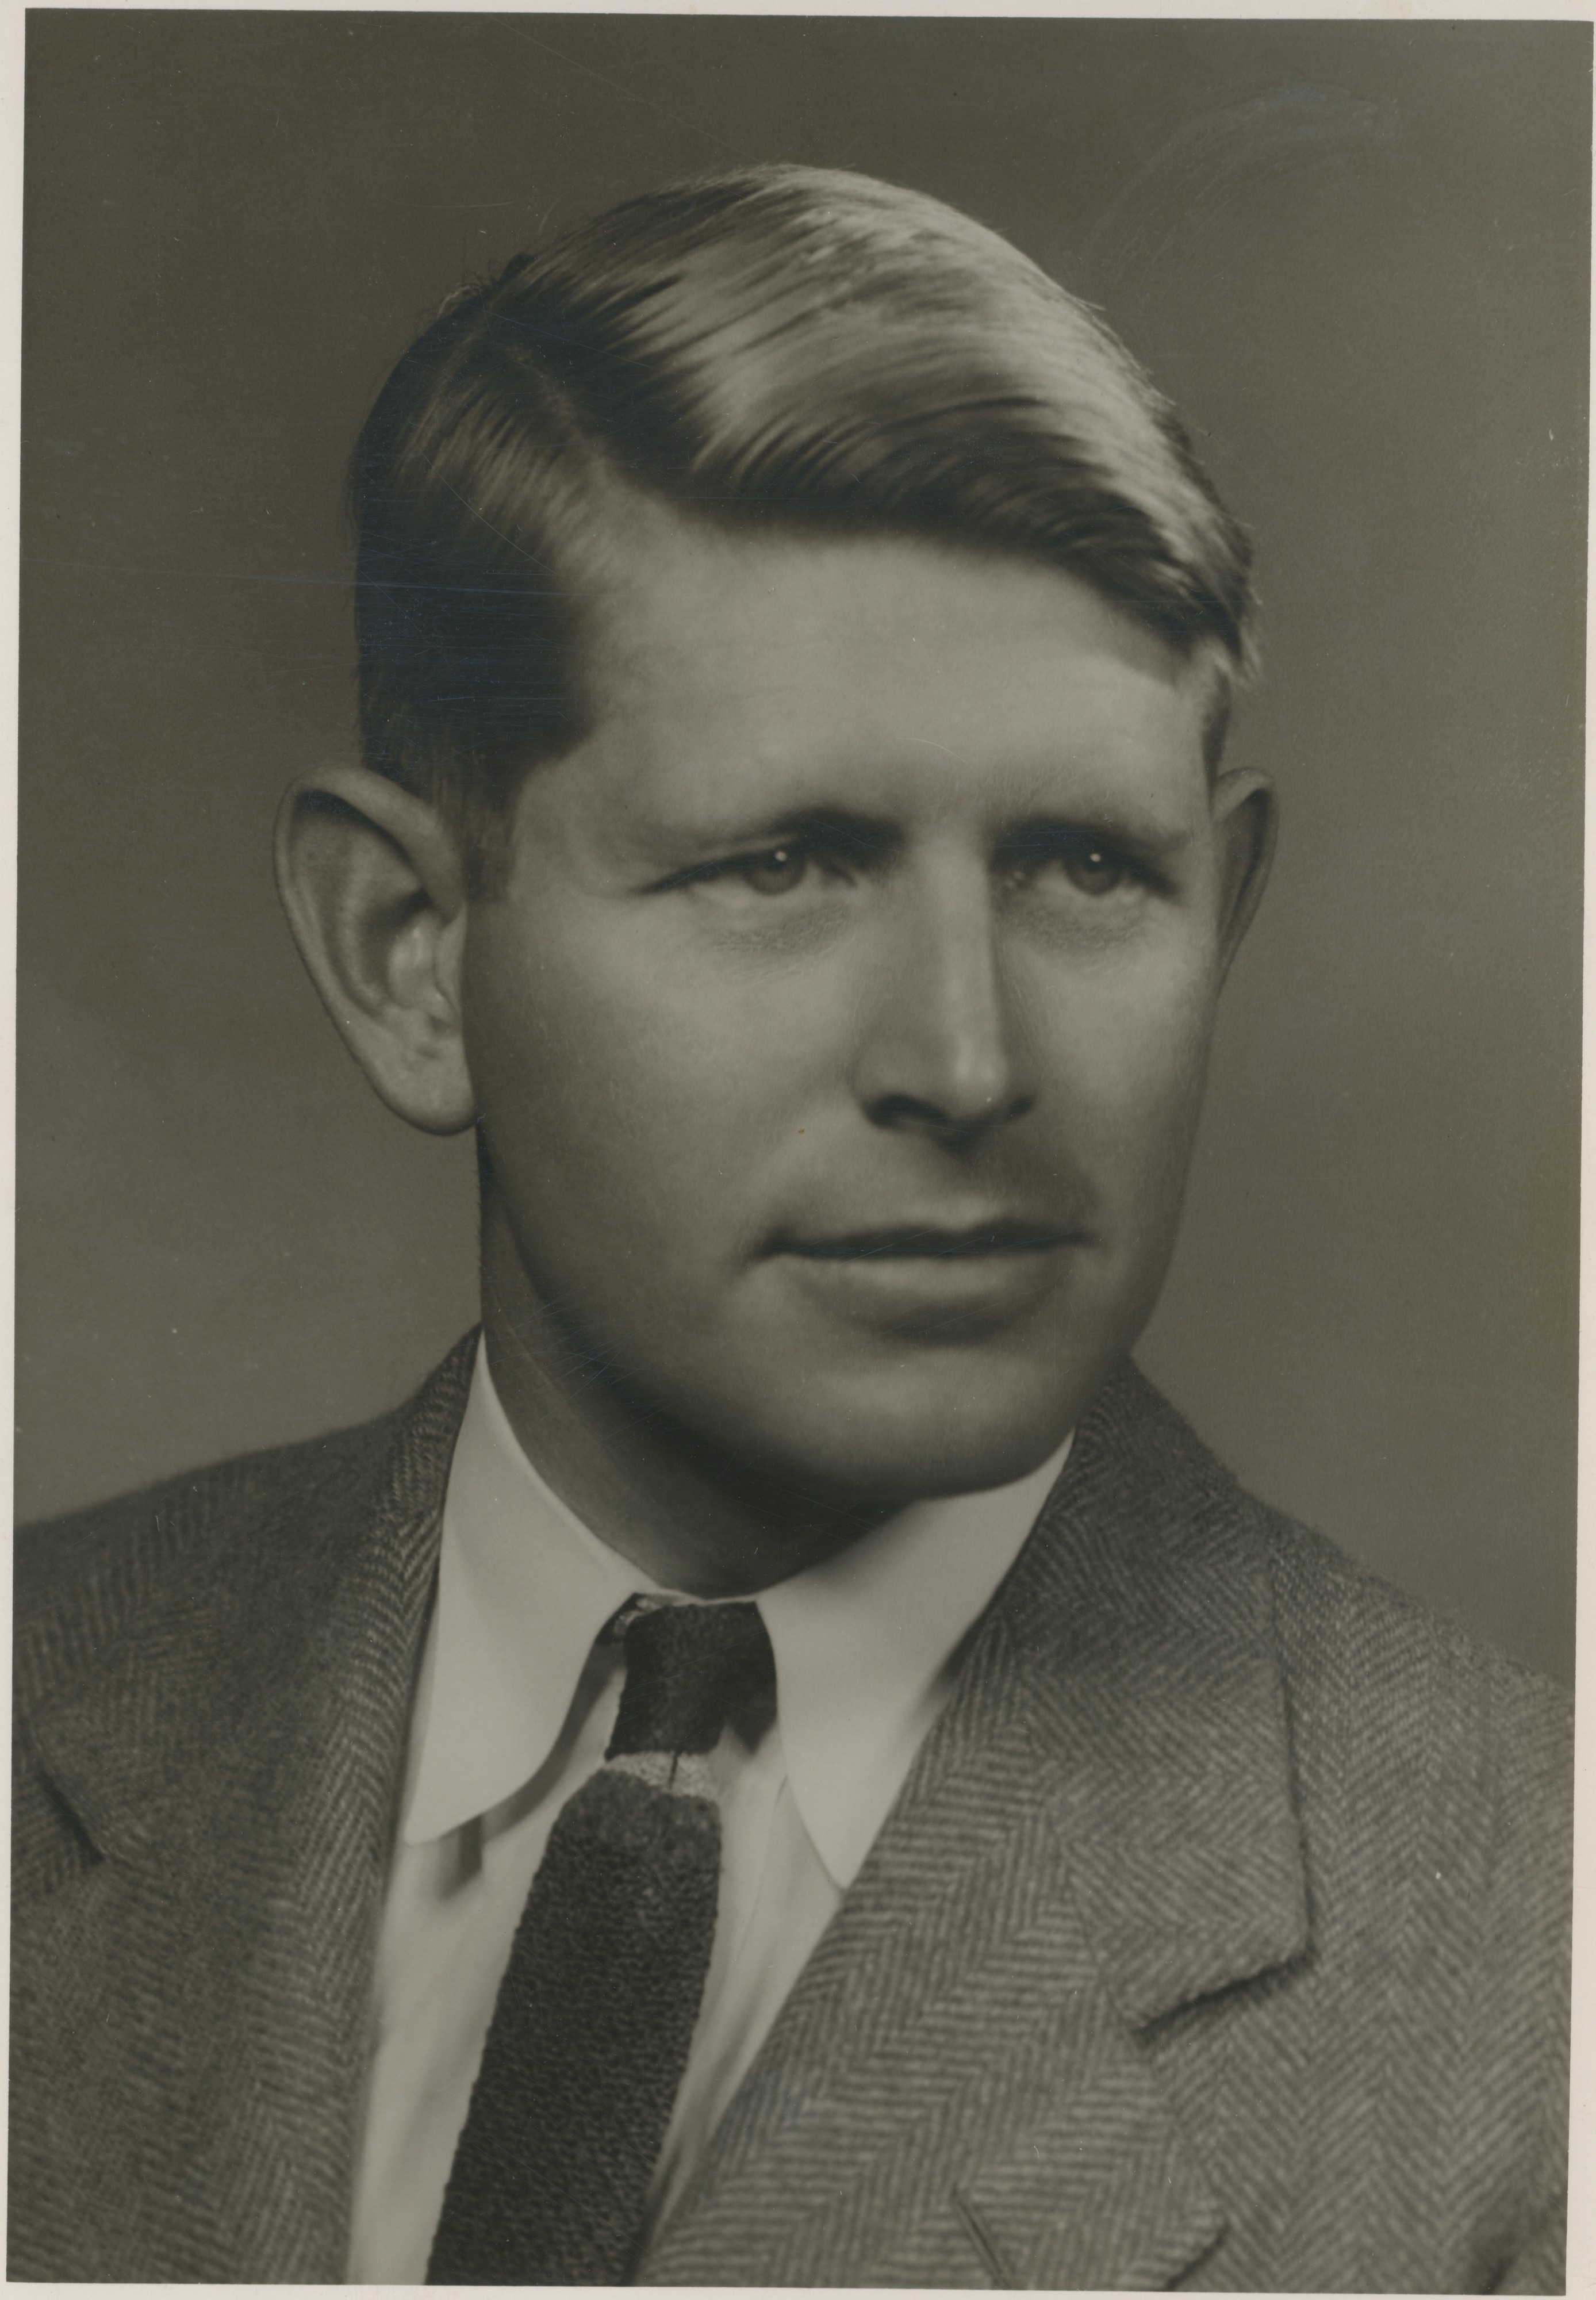 Henry F. Vander Velde, Candidate for Michigan House of Representatives, May 1946 image